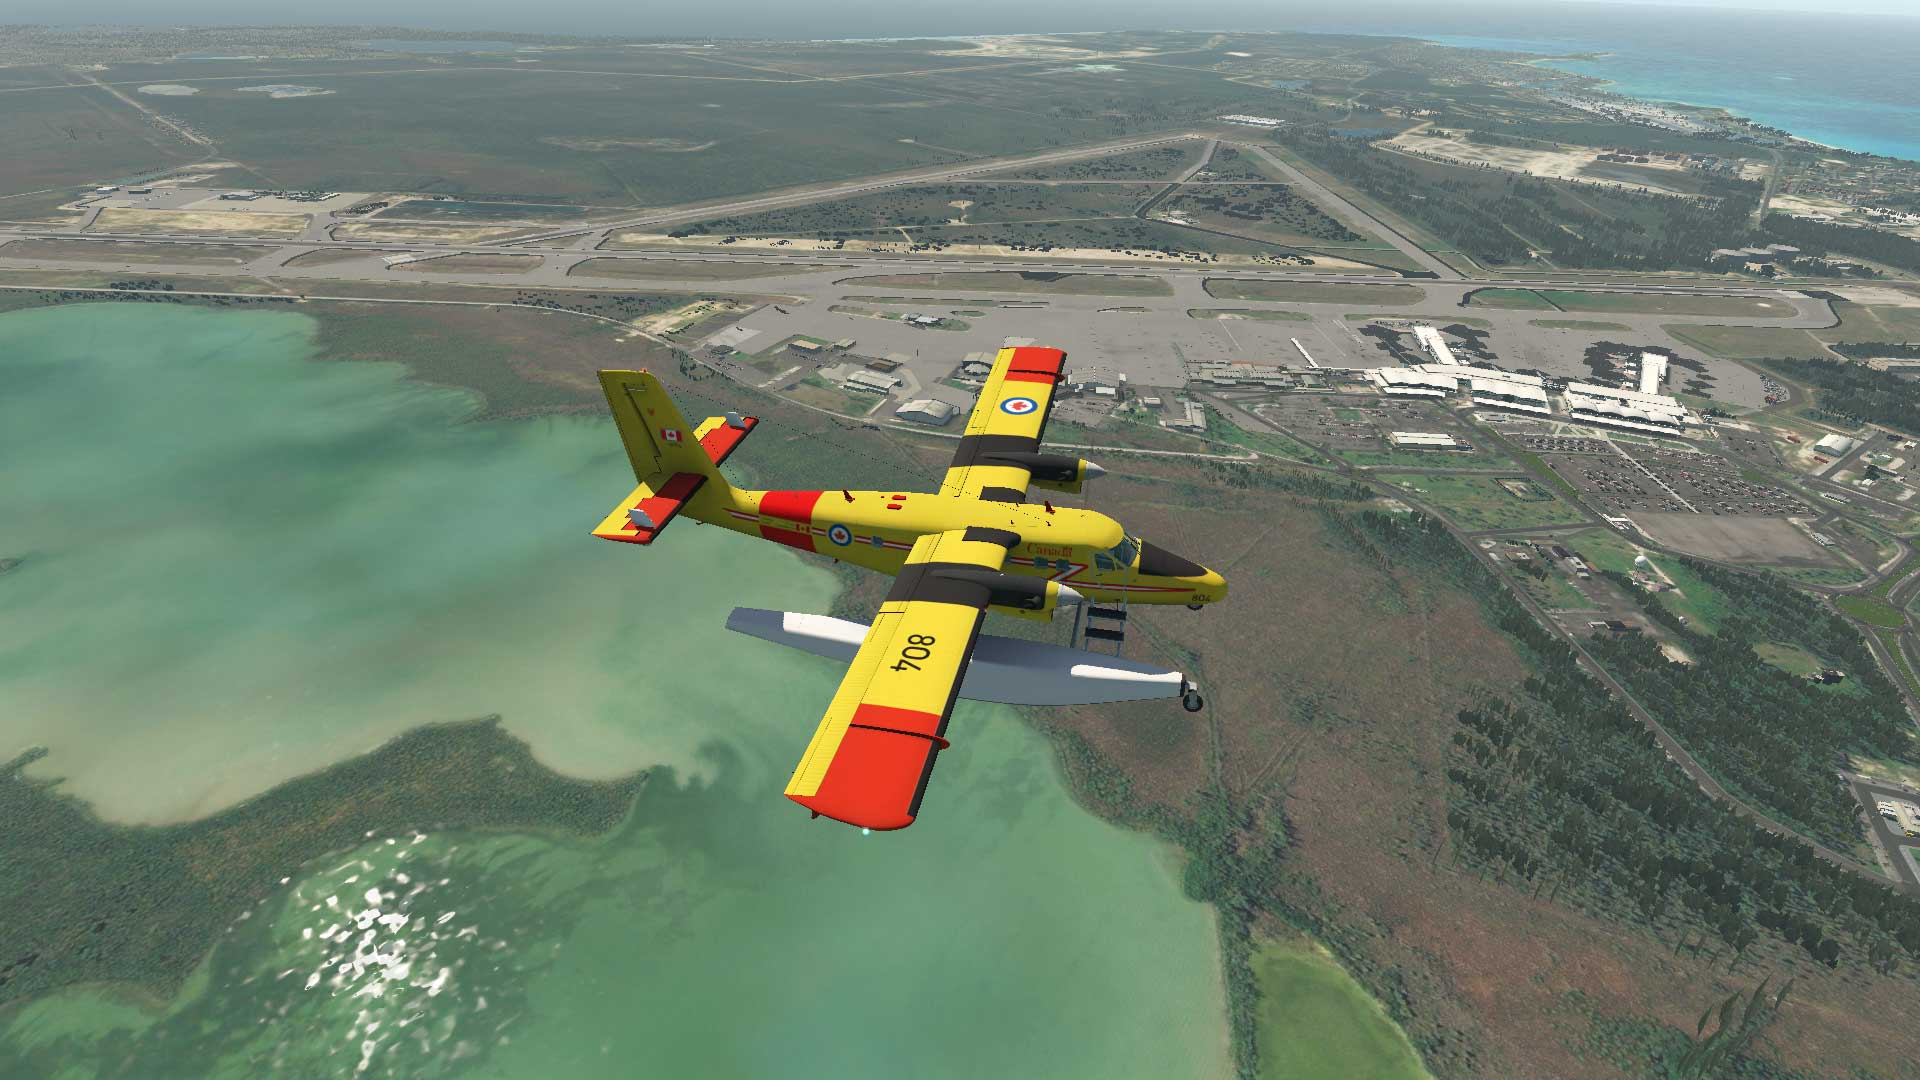 VFR in Nassau - X-Plane 11 Screenshots - X-Plane Org Forum